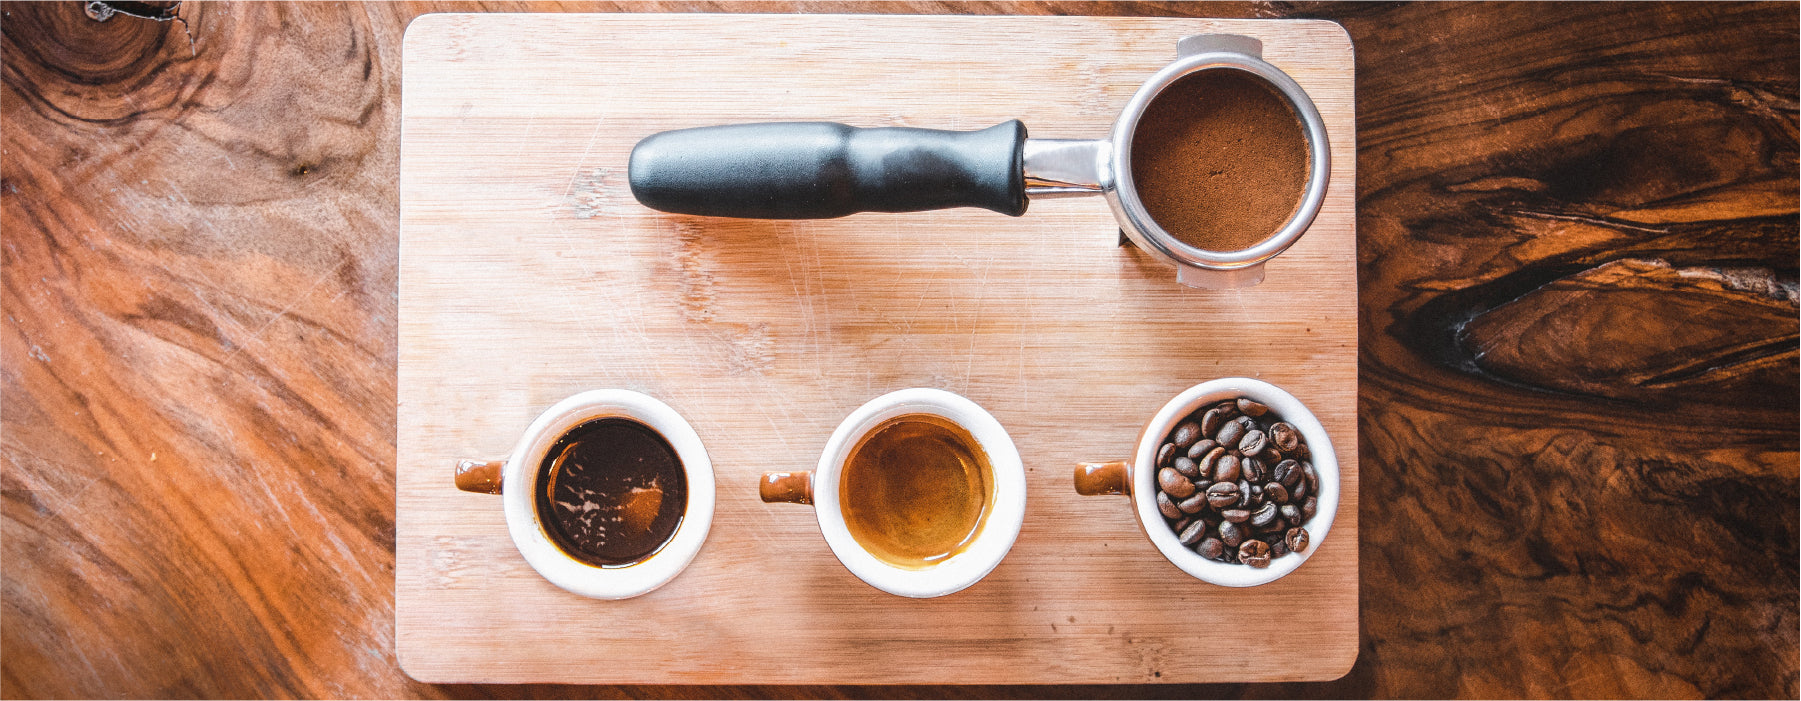 Why Fresh Espresso Is the Best Espresso (And How to Make It) by Coffee Life, an EspressoWorks blog